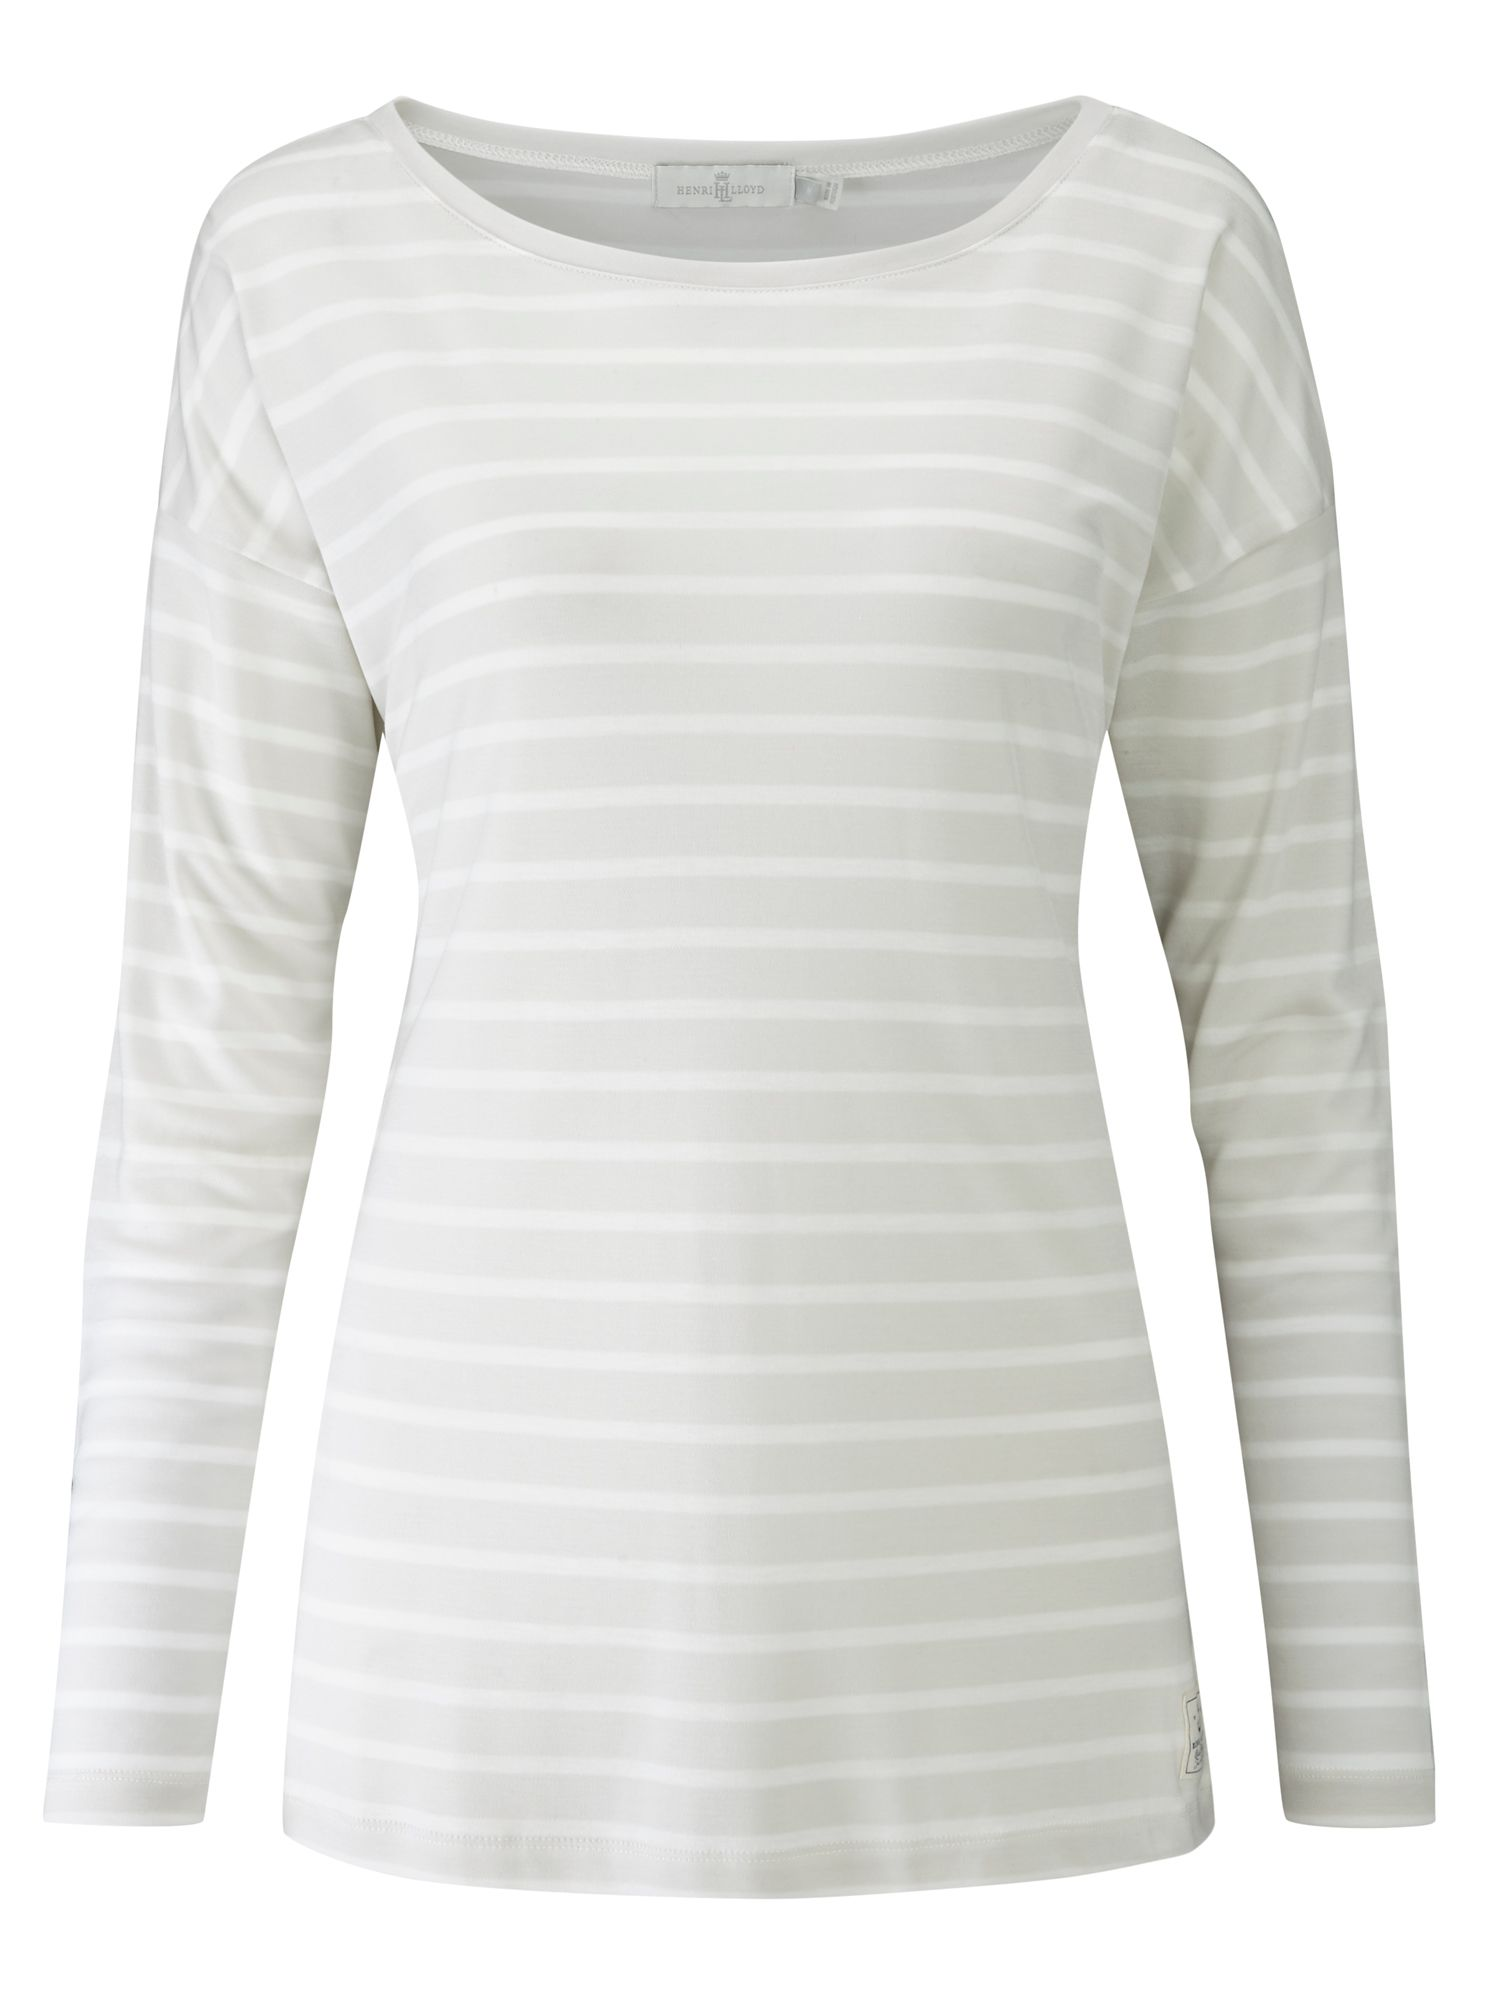 Henri Lloyd Breanna Striped Tee, Grey